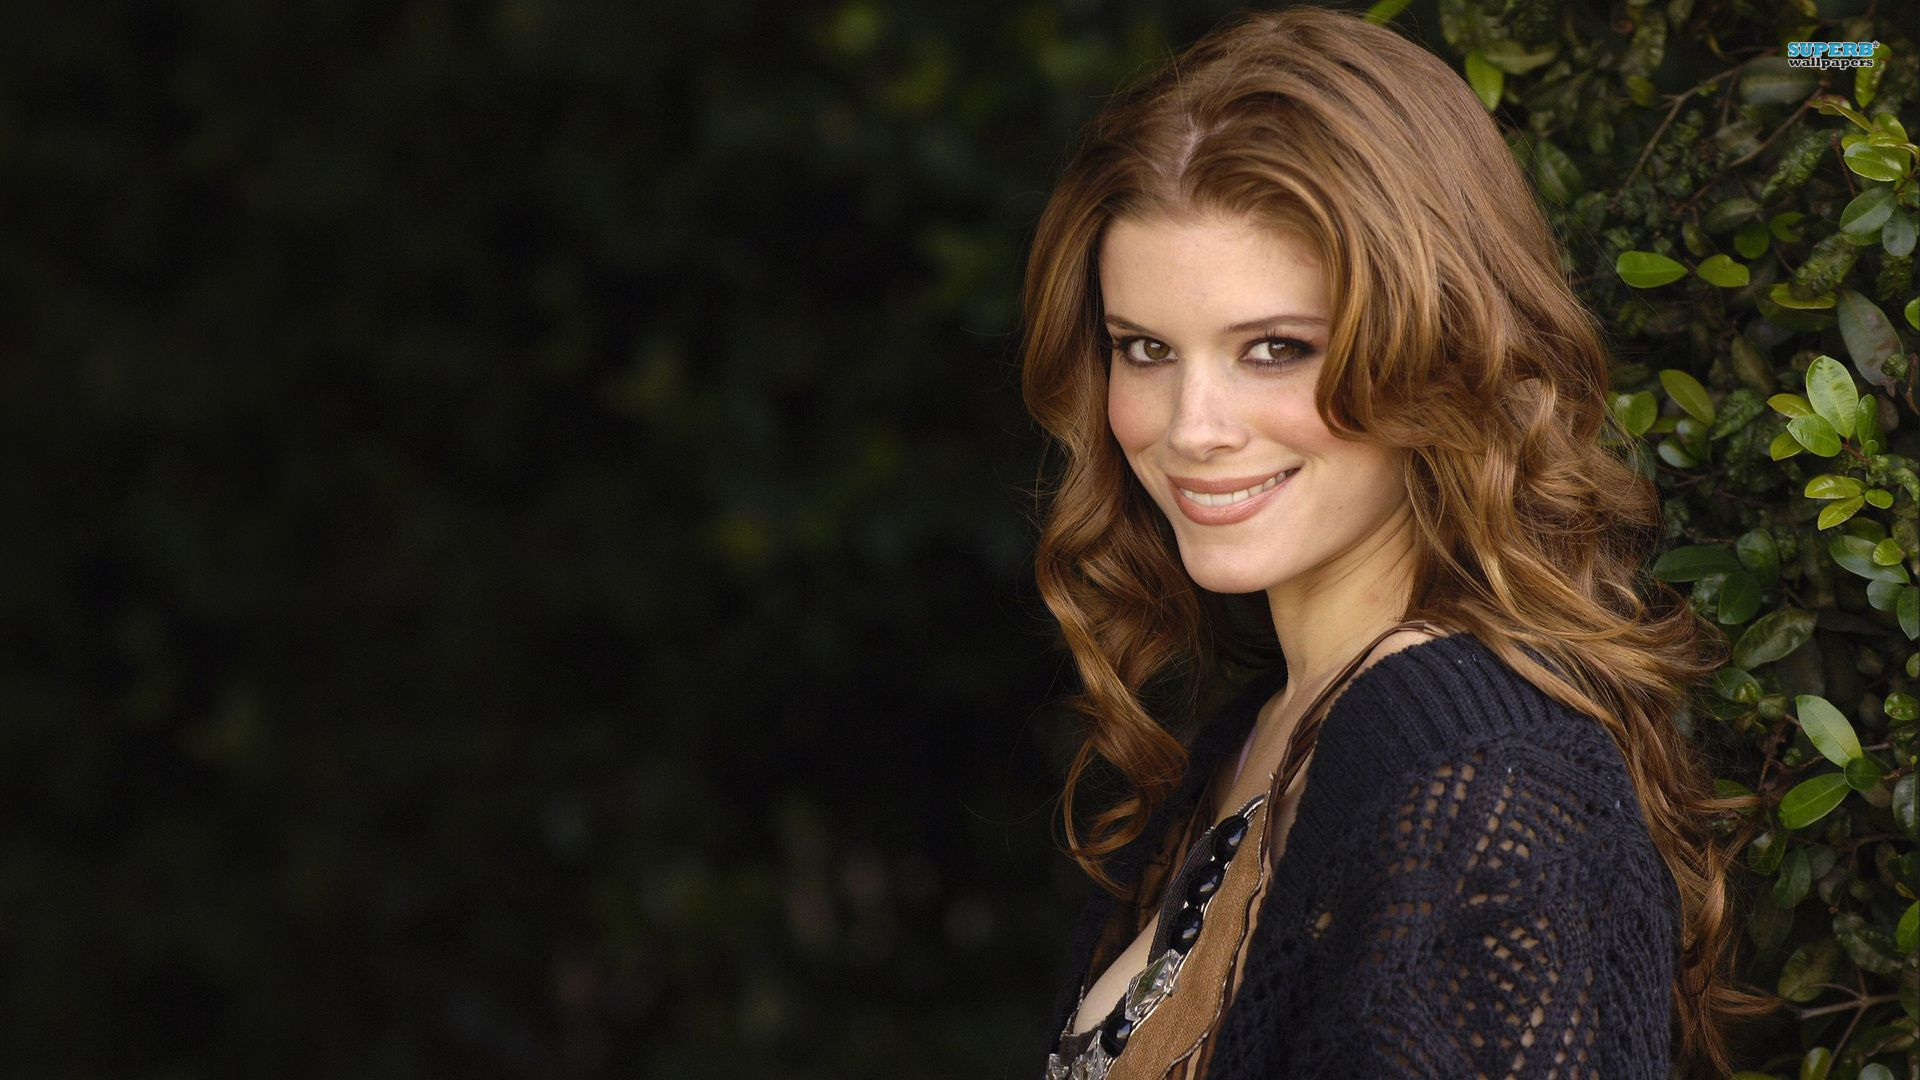 Celebrity Kate Mara nudes (93 photos), Ass, Hot, Selfie, swimsuit 2015